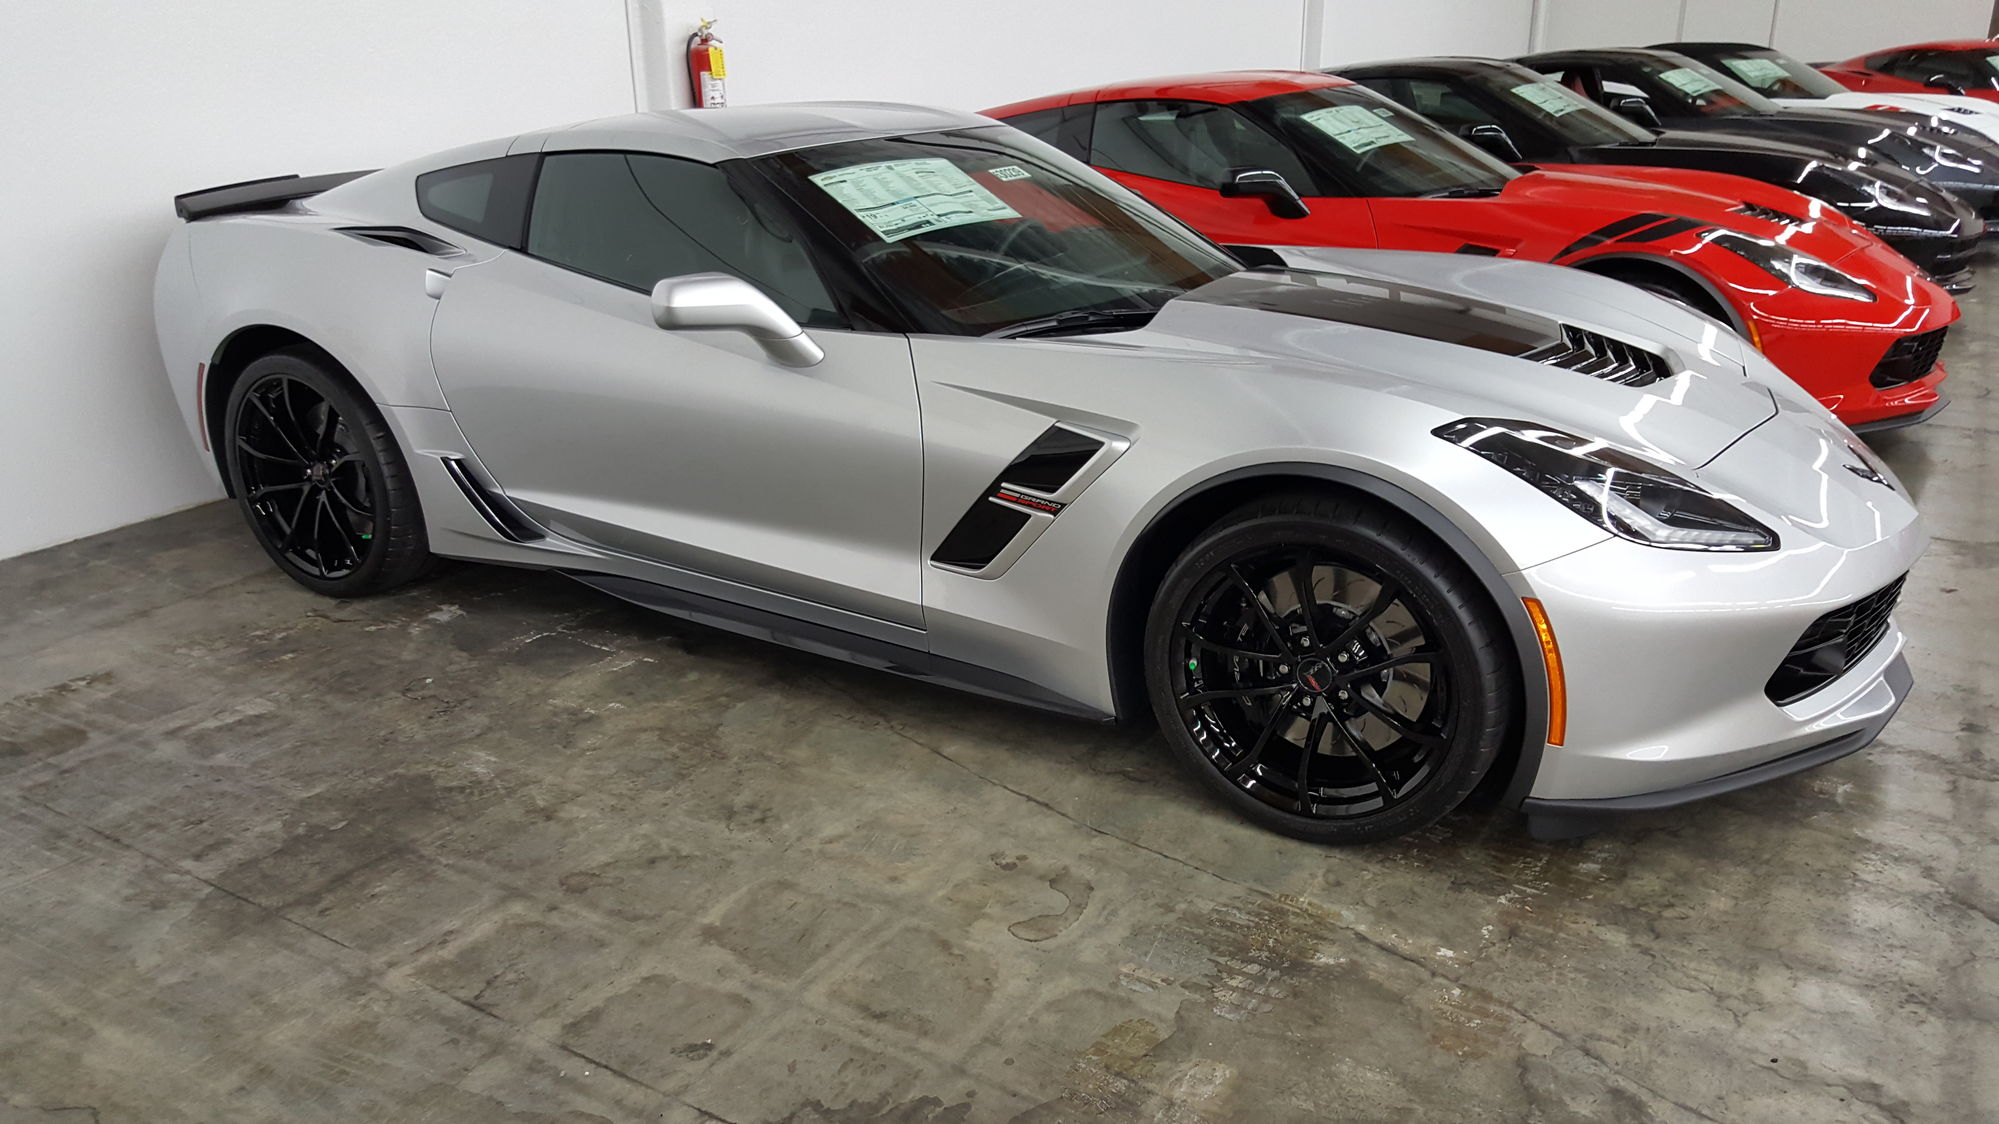 Familyowned Corvette dealer since 1973 features used Corvettes for sale Worldwide! Visit our Central Florida used Corvette showroom or call 407 4029505